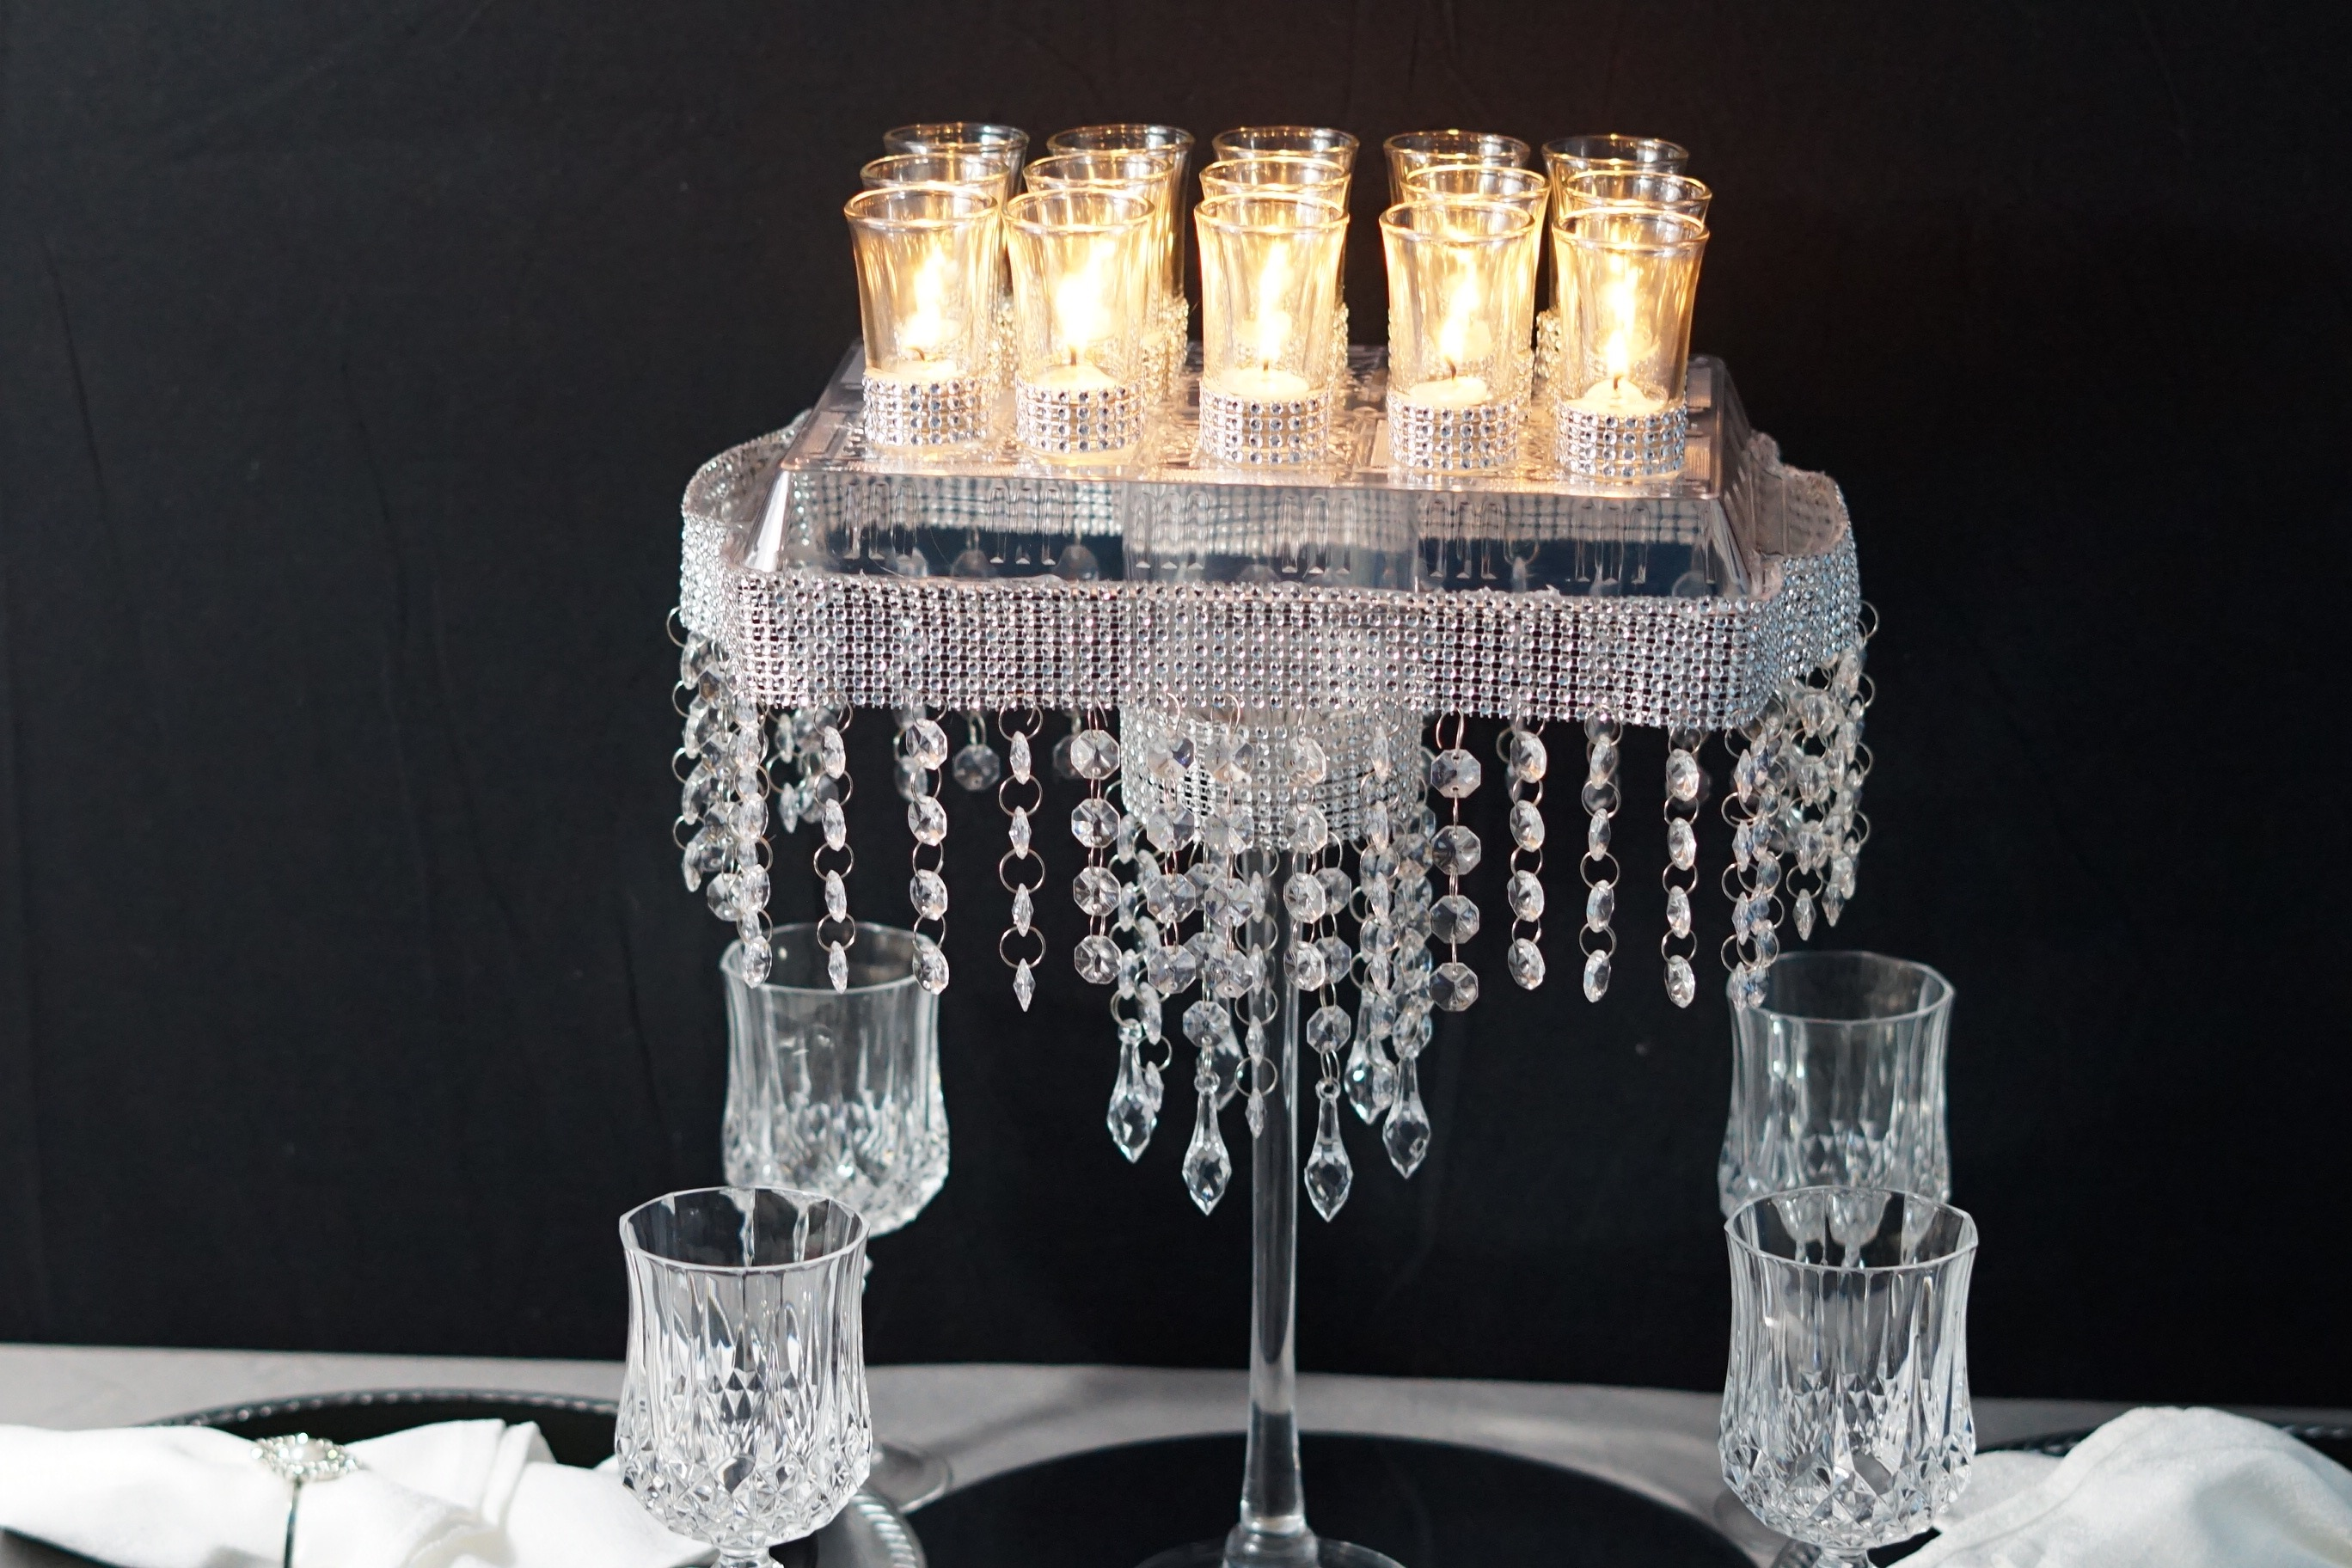 Diy candle glam wedding centerpiece lets glam it up this week with our diy candle glam wedding centerpiece adorned with gems rhinestone trim and candles this blinged out table decor is junglespirit Image collections